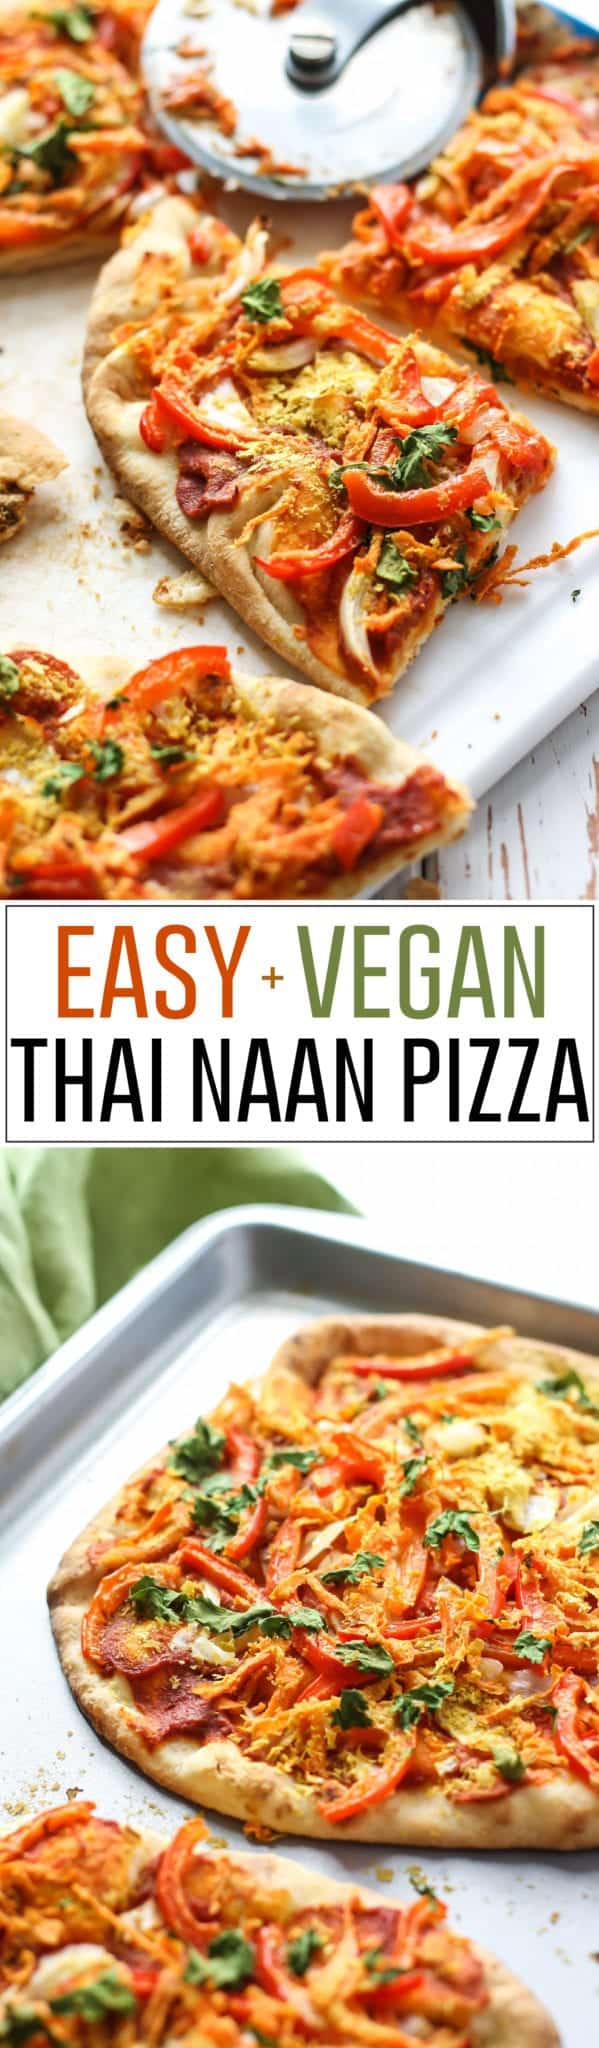 easy vegan thai naan pizza on baking sheet pinterest image